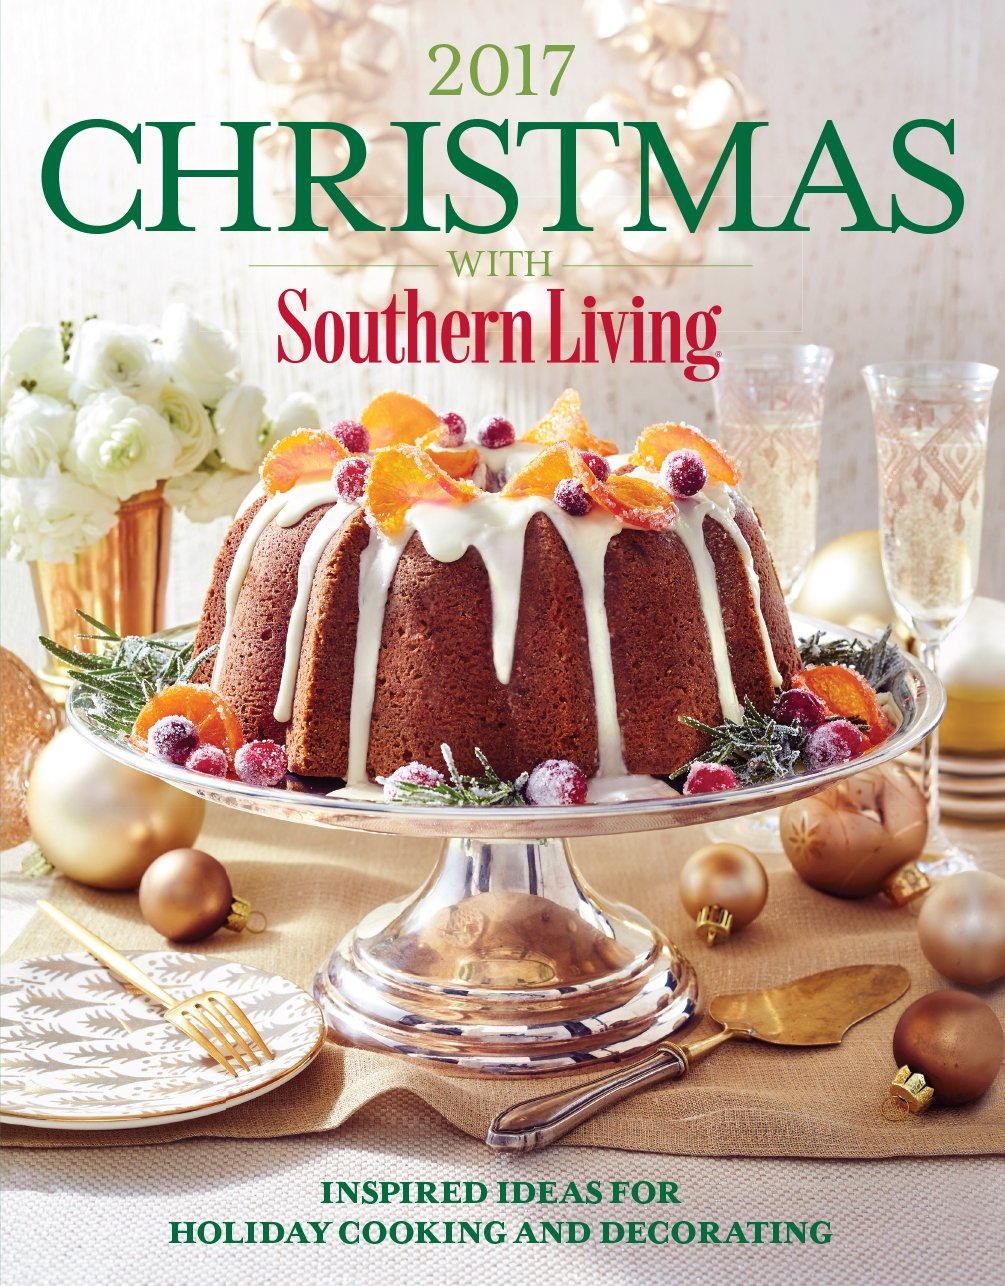 Christmas With Southern Living 2017 Inspired Ideas For Holiday